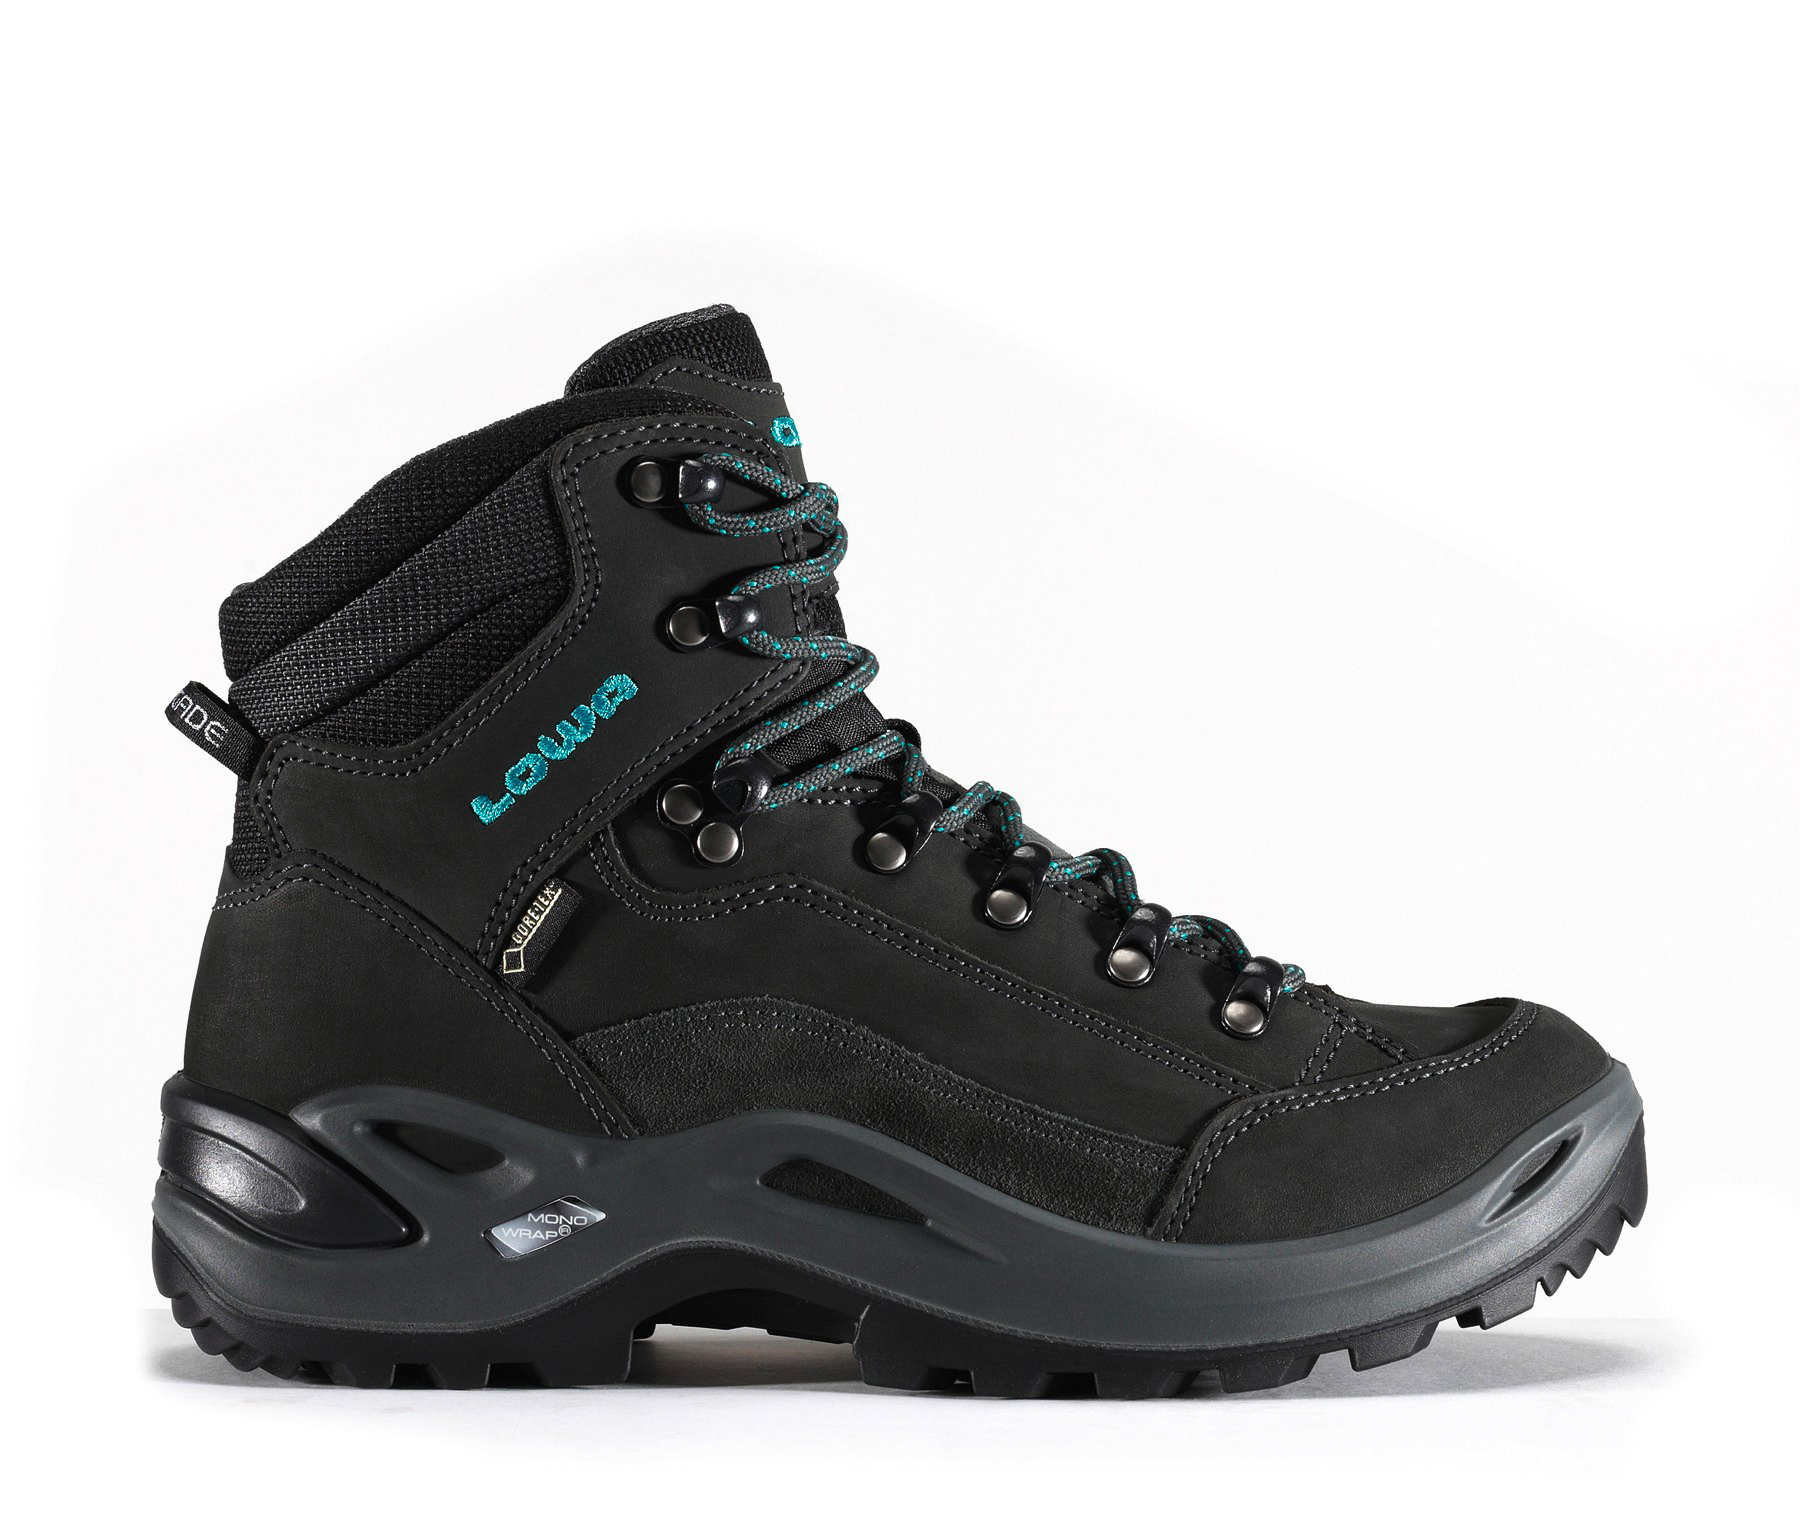 e0753da13240a8 Lowa Renegade GTX® Mid | Women's Regular Fit | Waterproof Hiking ...